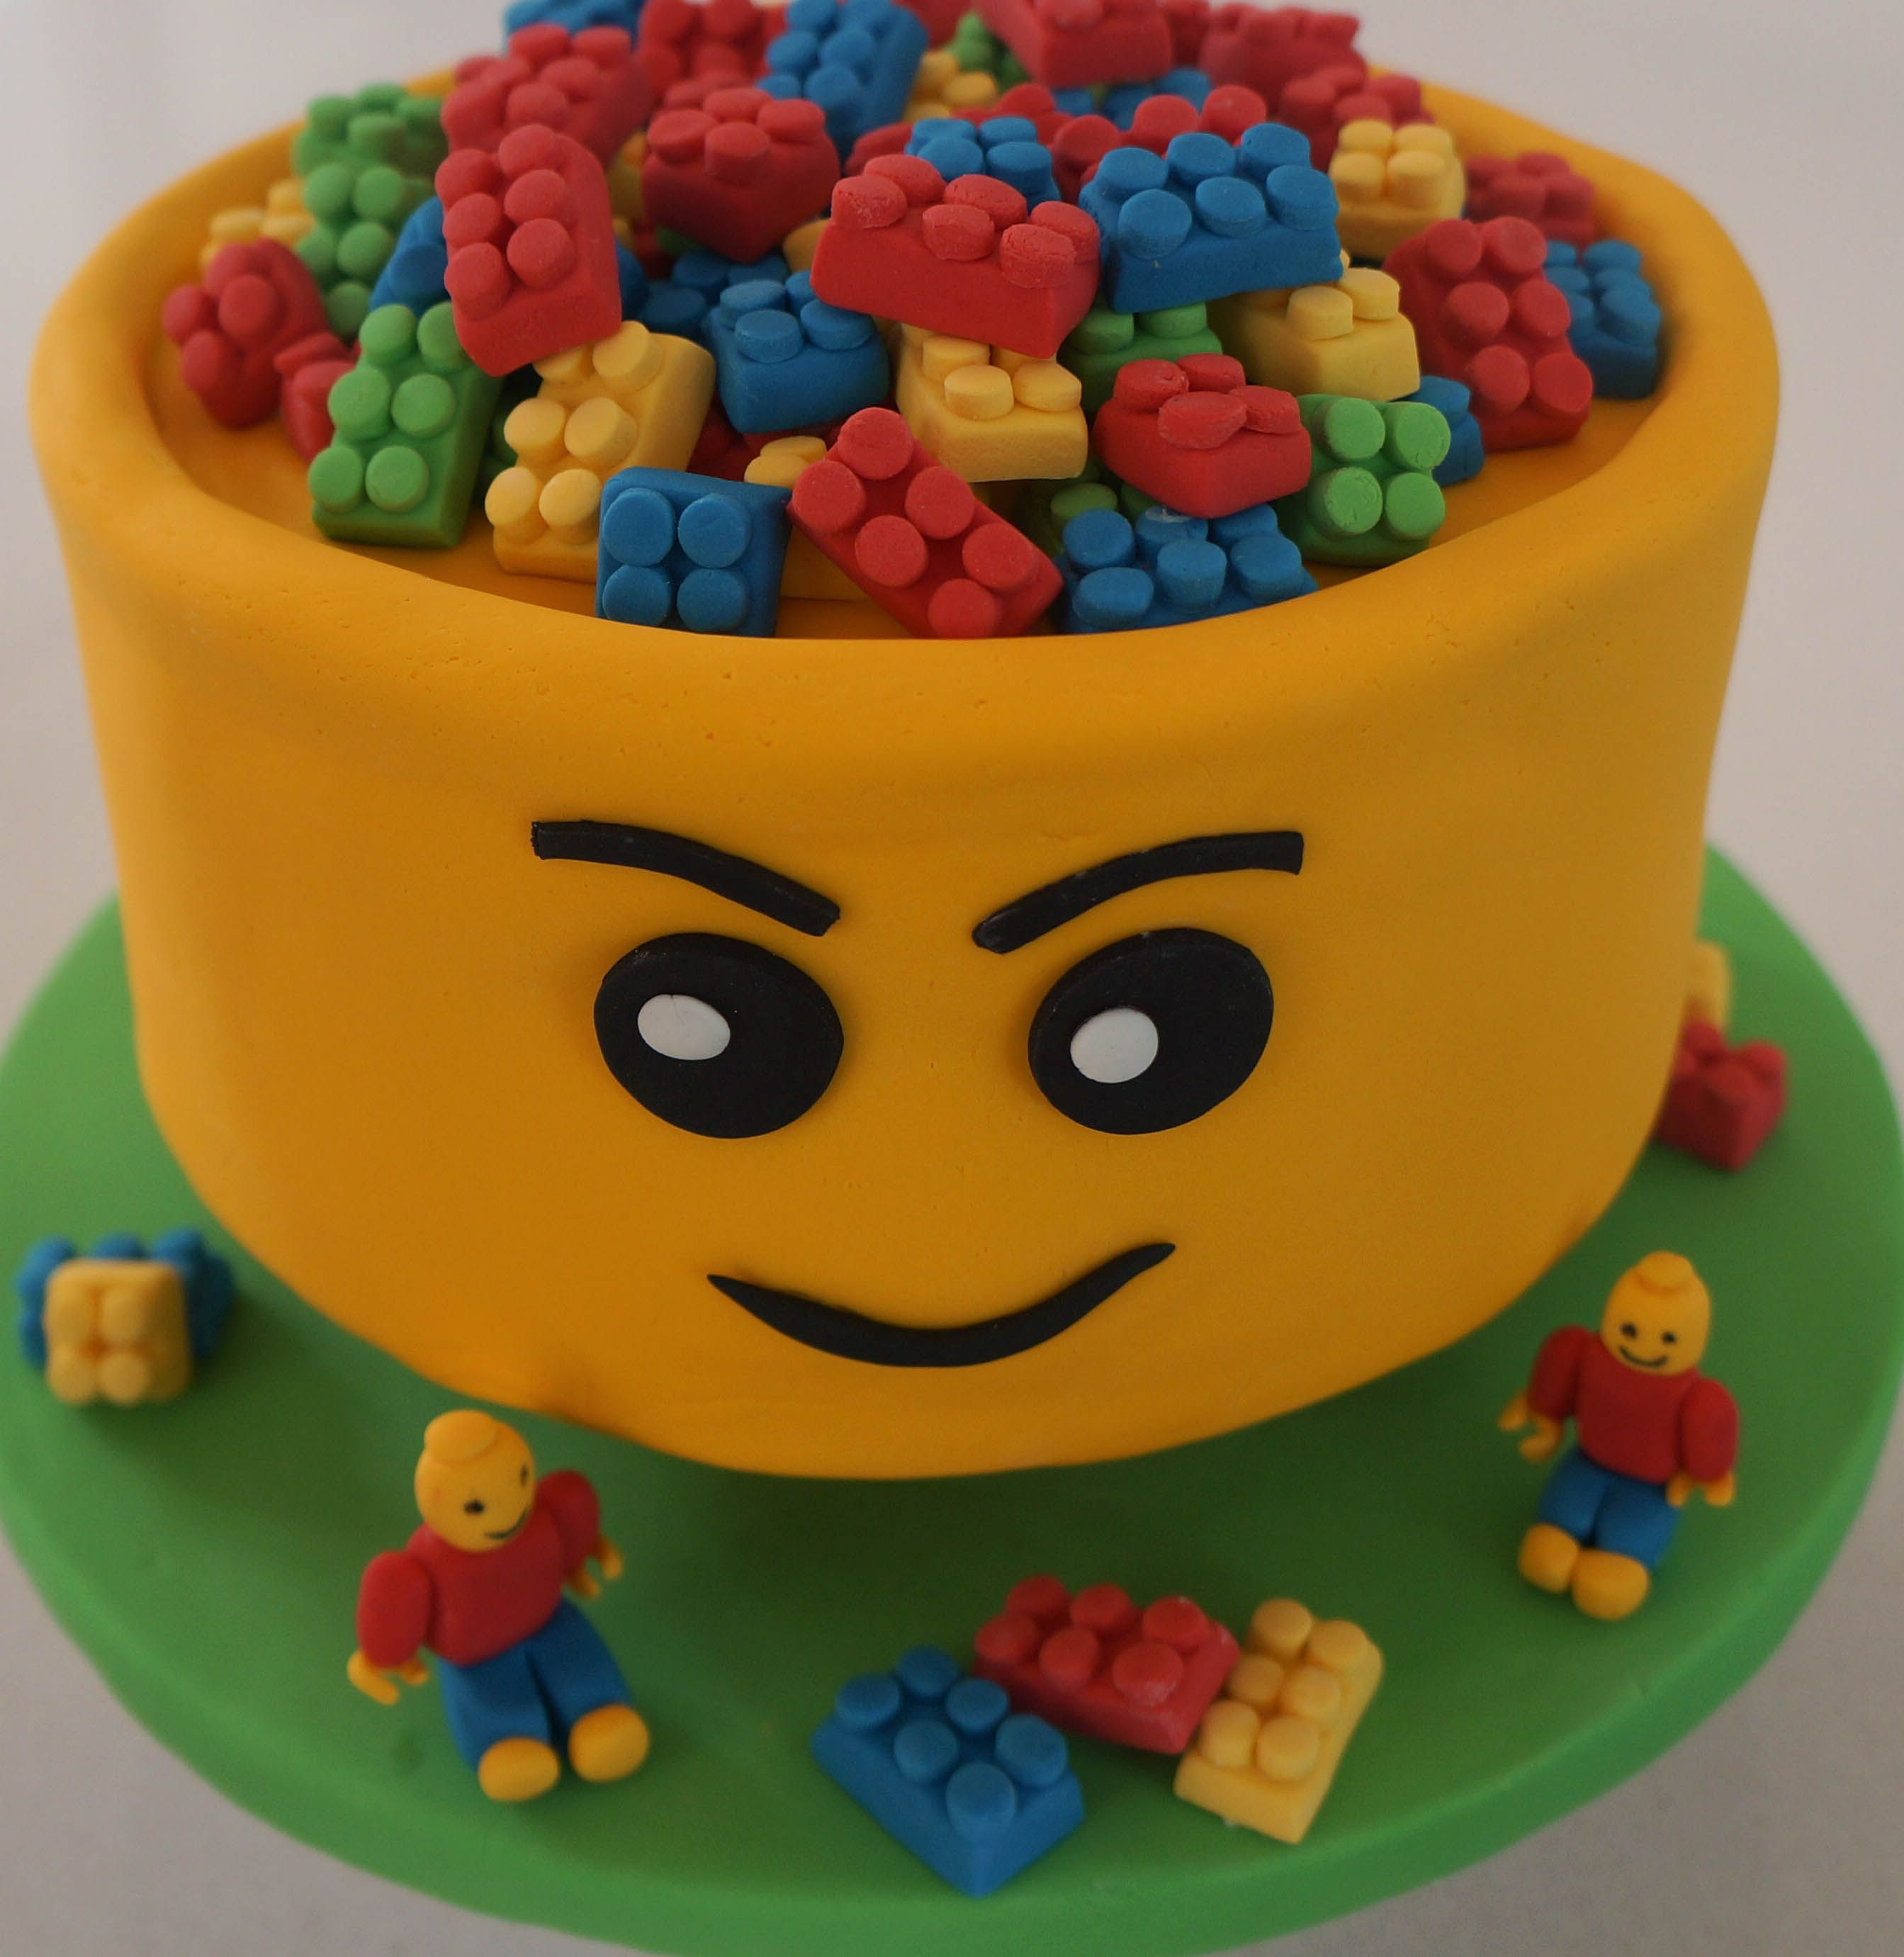 Lego cake made by Cake Occasions Auckland New Zealand www